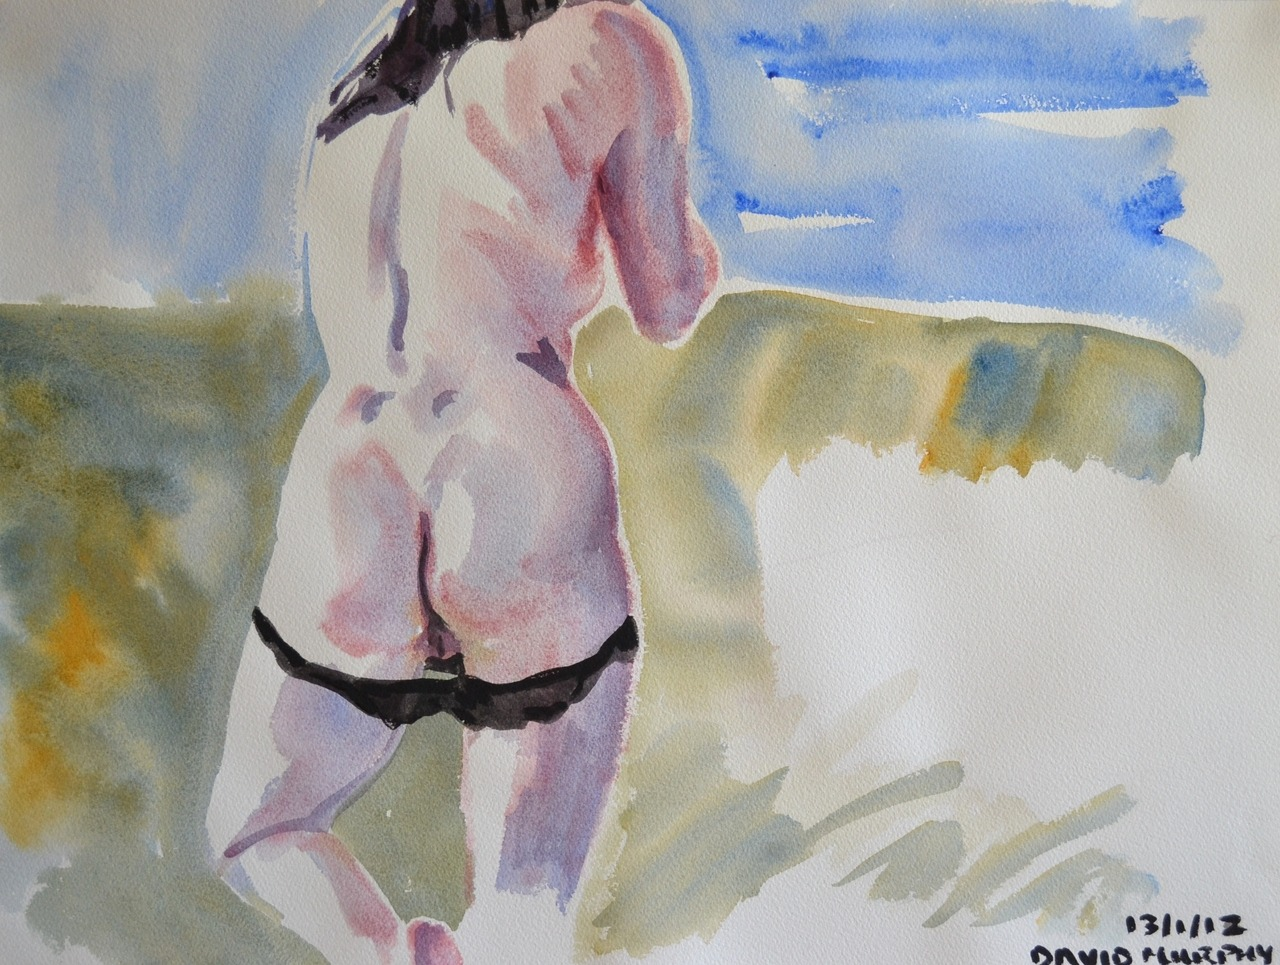 "David Murphy, Naked Girl No. 10, 2012, 24"" x 18"", Watercolour on Arches 140lb Watercolour Paper. www.davidbrendanmurphy.com"